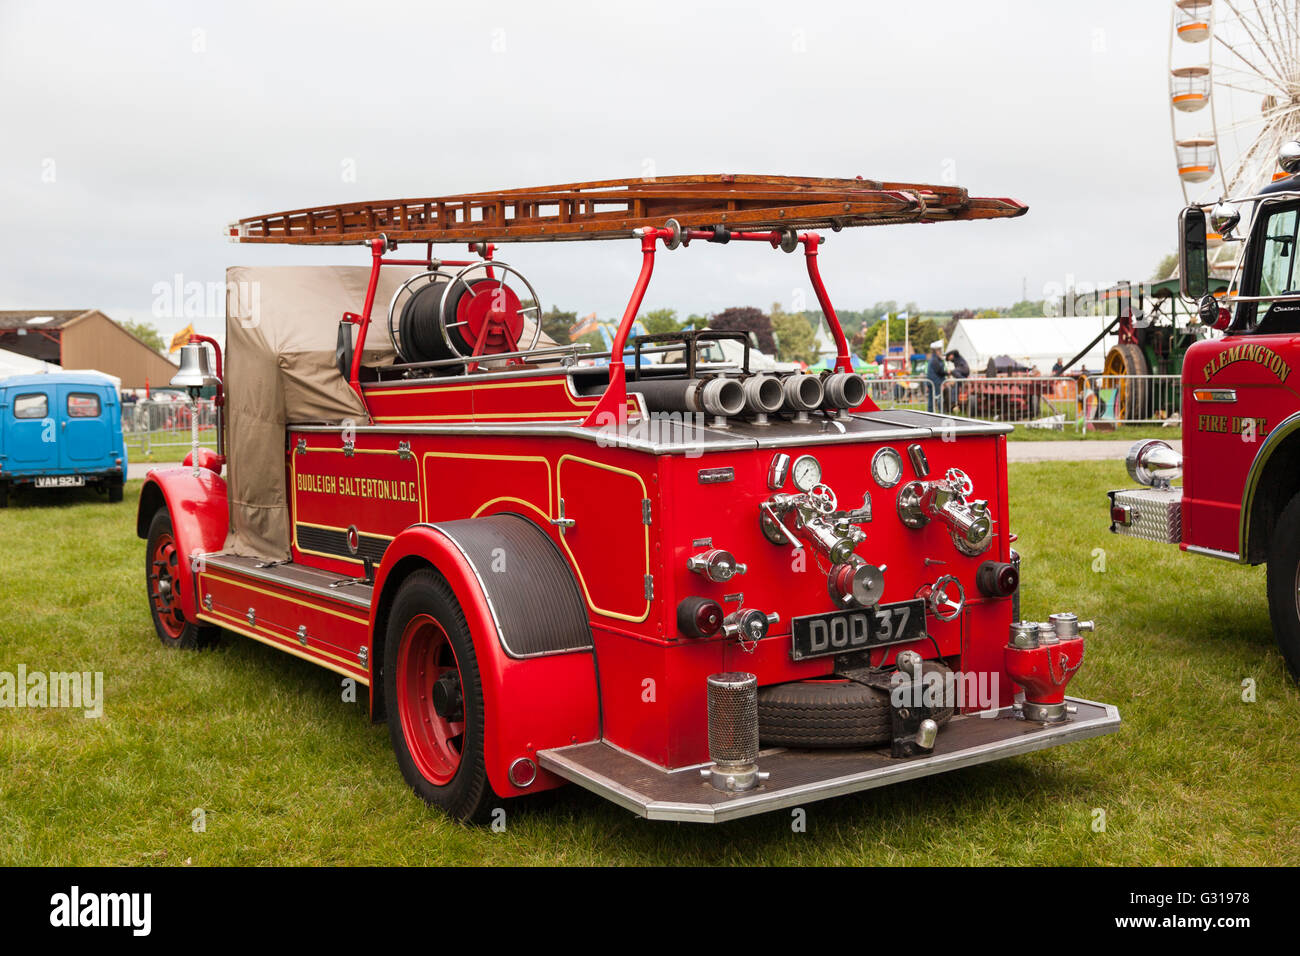 Vintage Fire Engine shown at the Royal Bath & West Show, Shepton Mallet, Somerset. - Stock Image